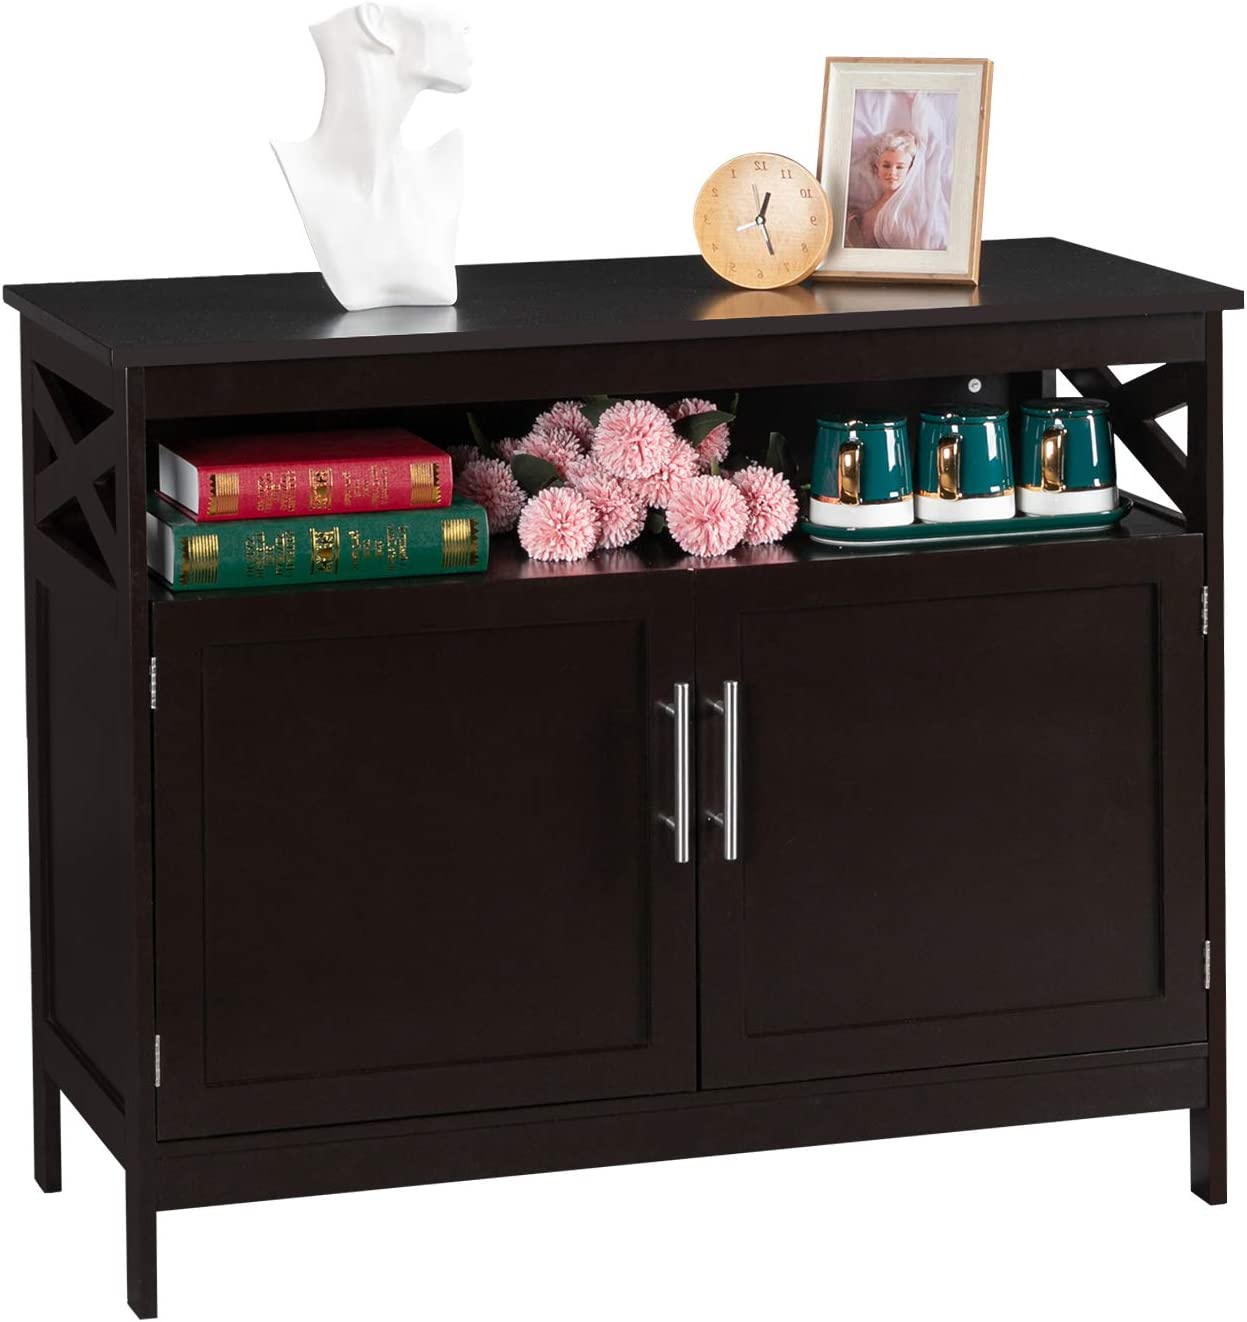 Vingli Sideboard Buffet Brown Kitchen Sideboard Cabinet Modern Dining Storage Server Multi Functional Buffet Cabinet In Kitchen Dining Room Living Room With Open Shelf Buffets Sideboards Home Kitchen Rayvoltbike Com